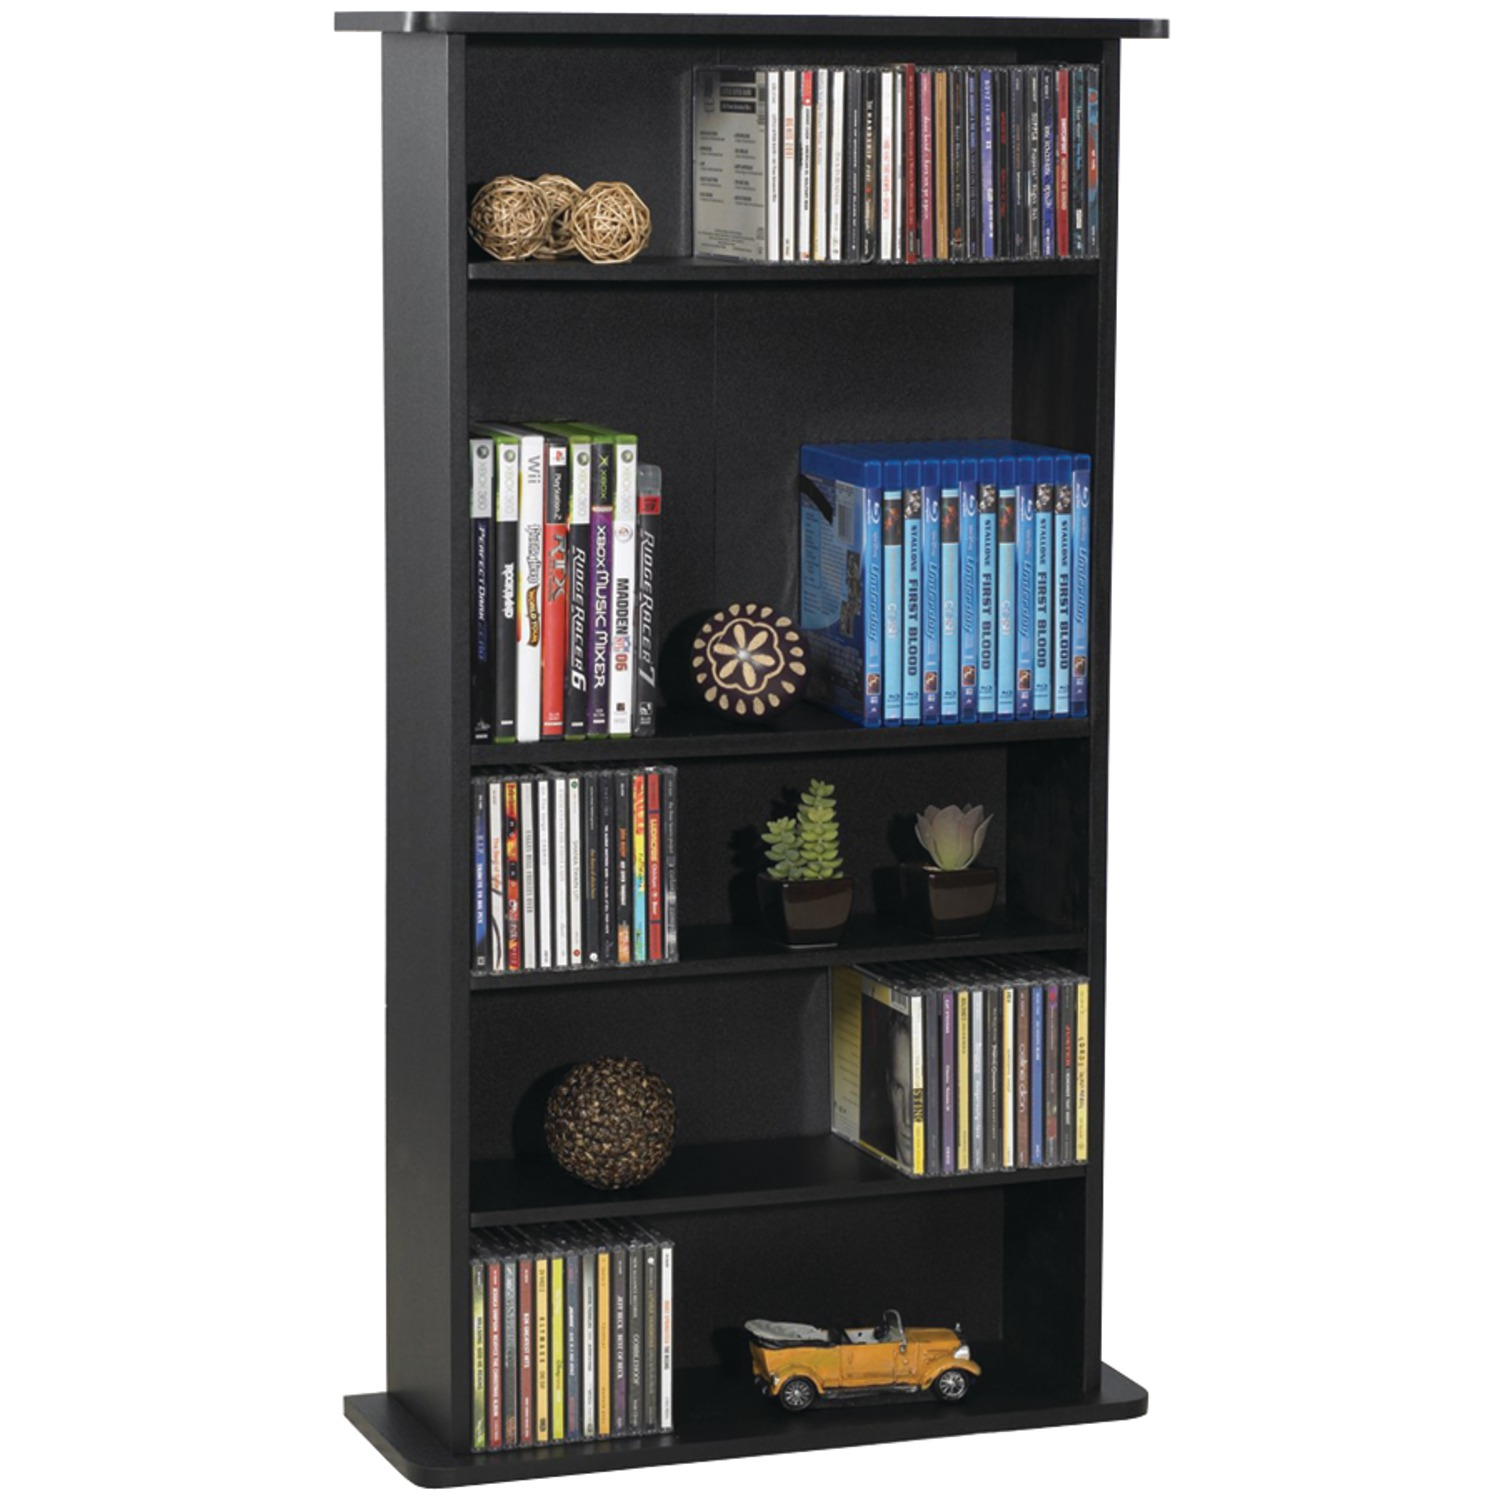 "Atlantic 36"" Drawbridge Wood Media Storage Shelf, 7"" Depth (240 CDs, 108 DVDs, 132 BluRays), Black"